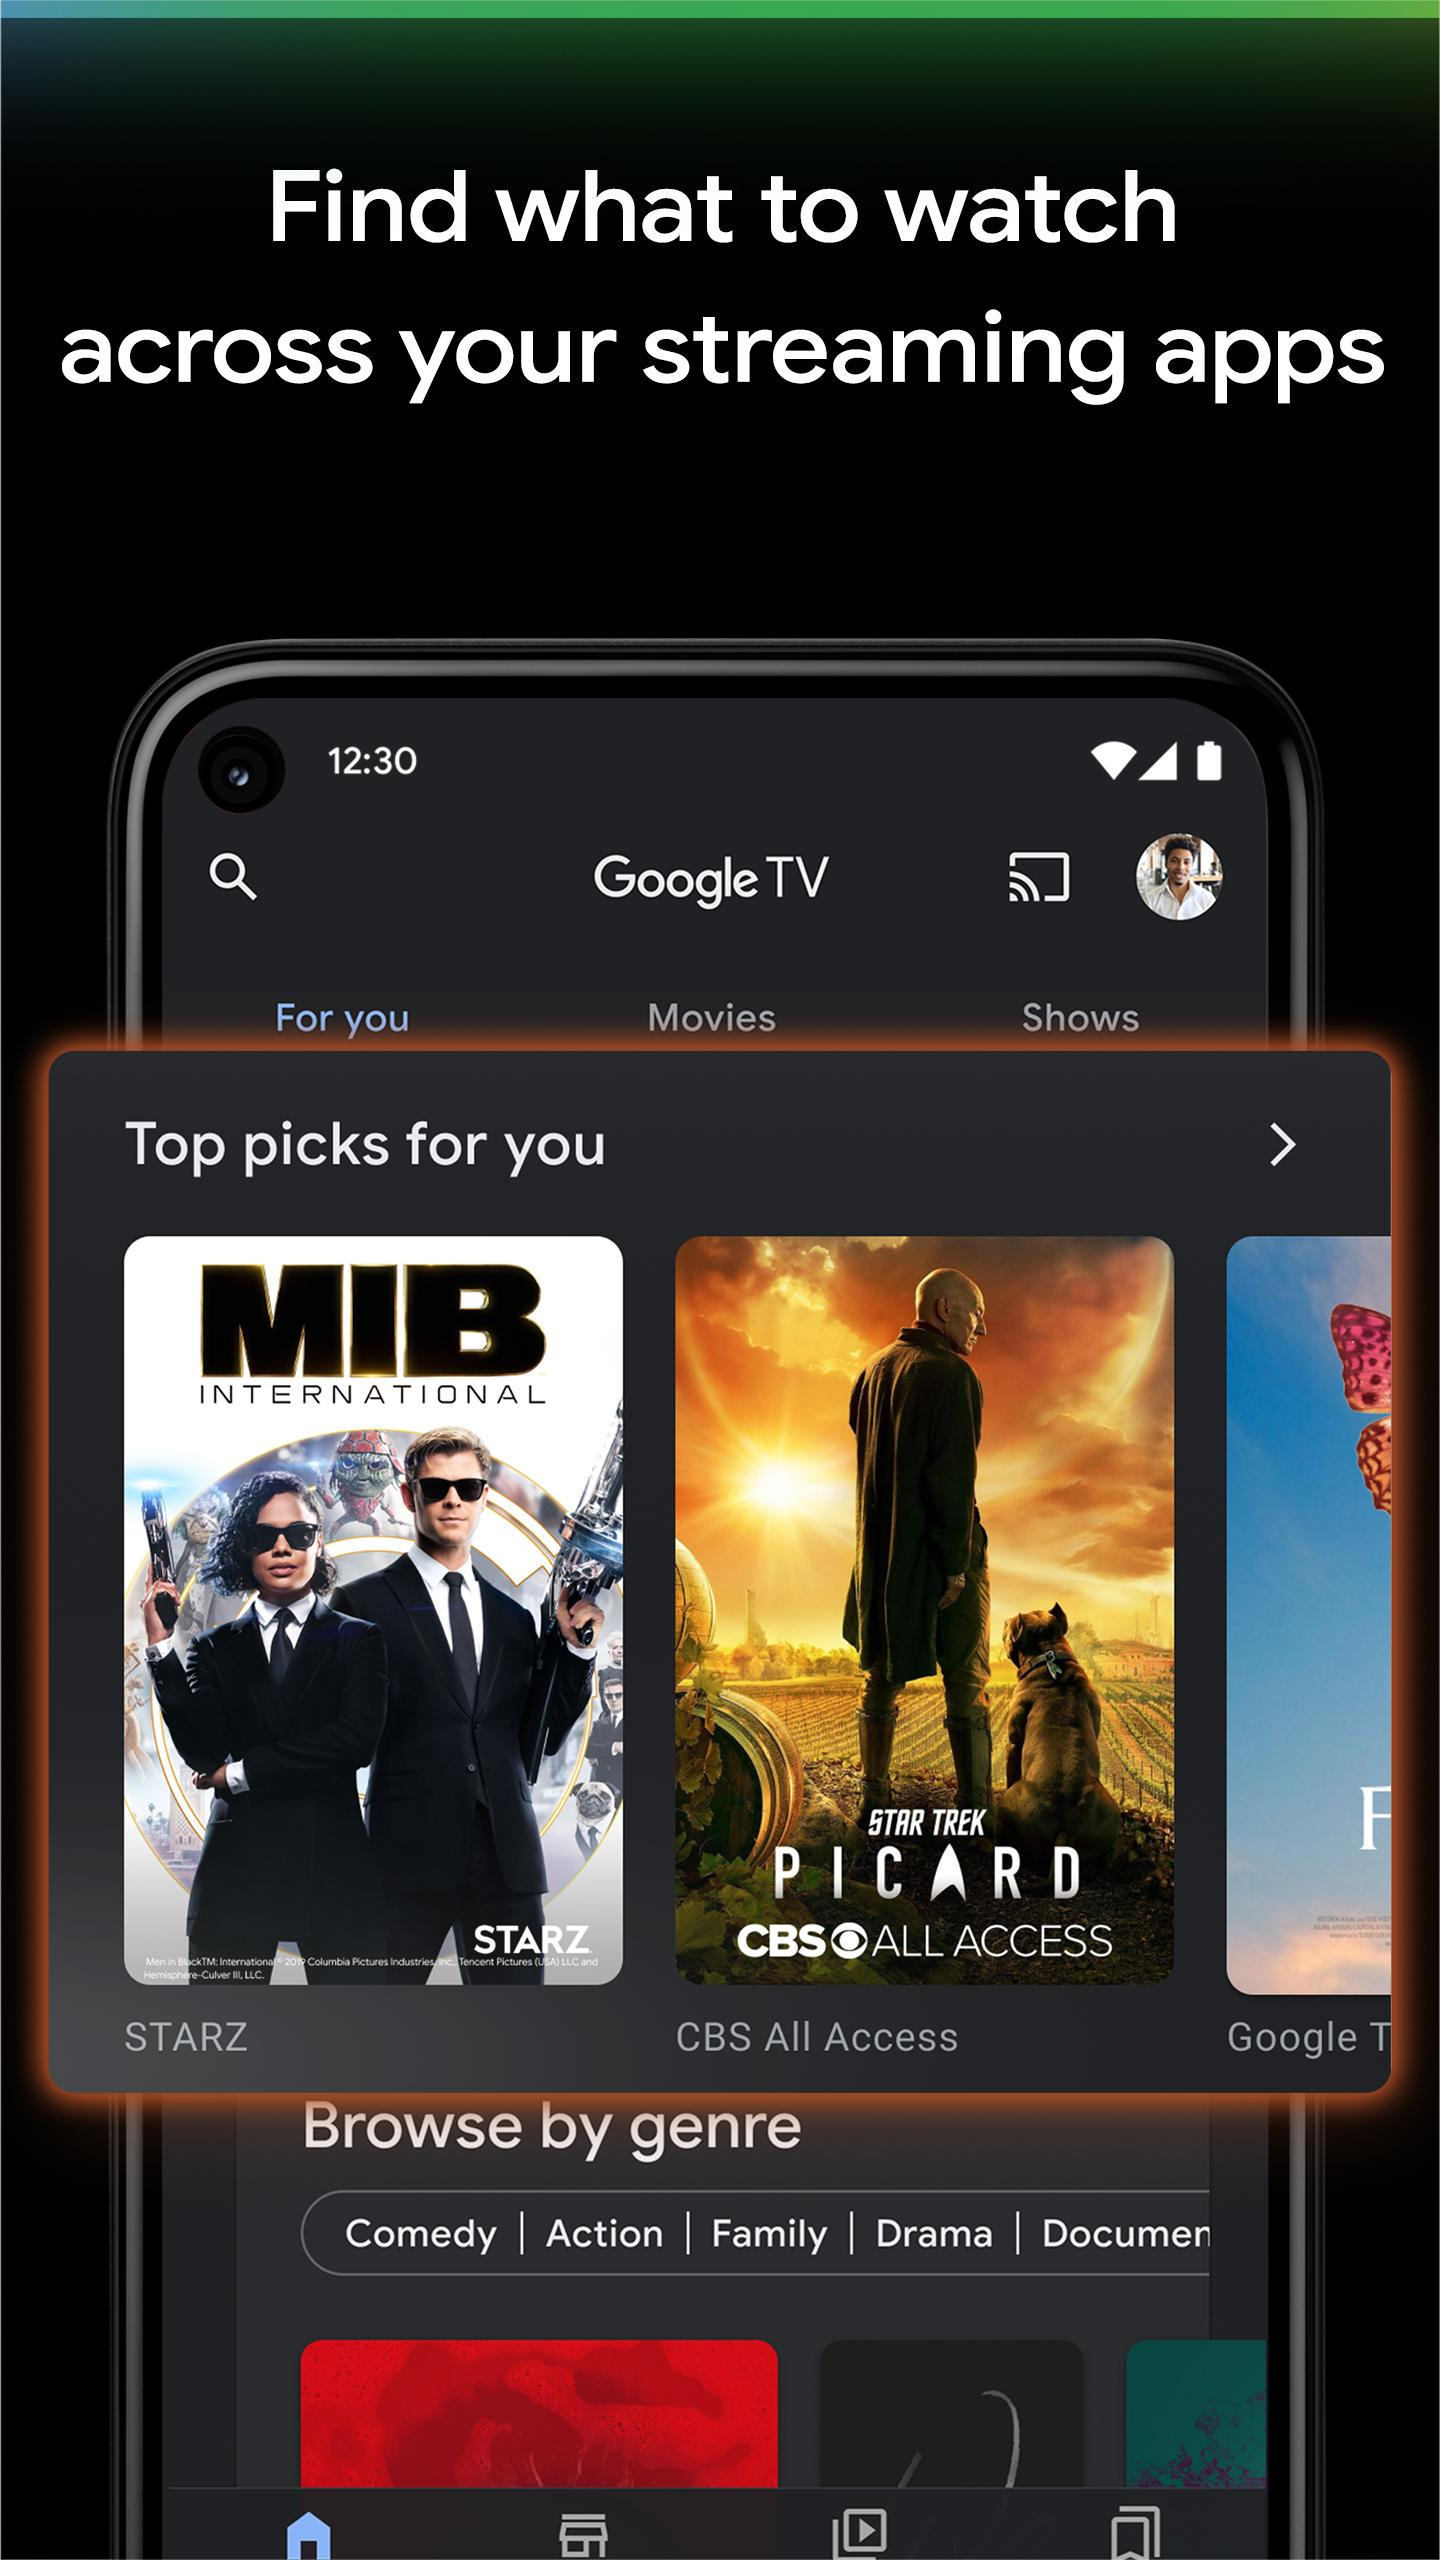 Google TV (previously Play Movies & TV) poster